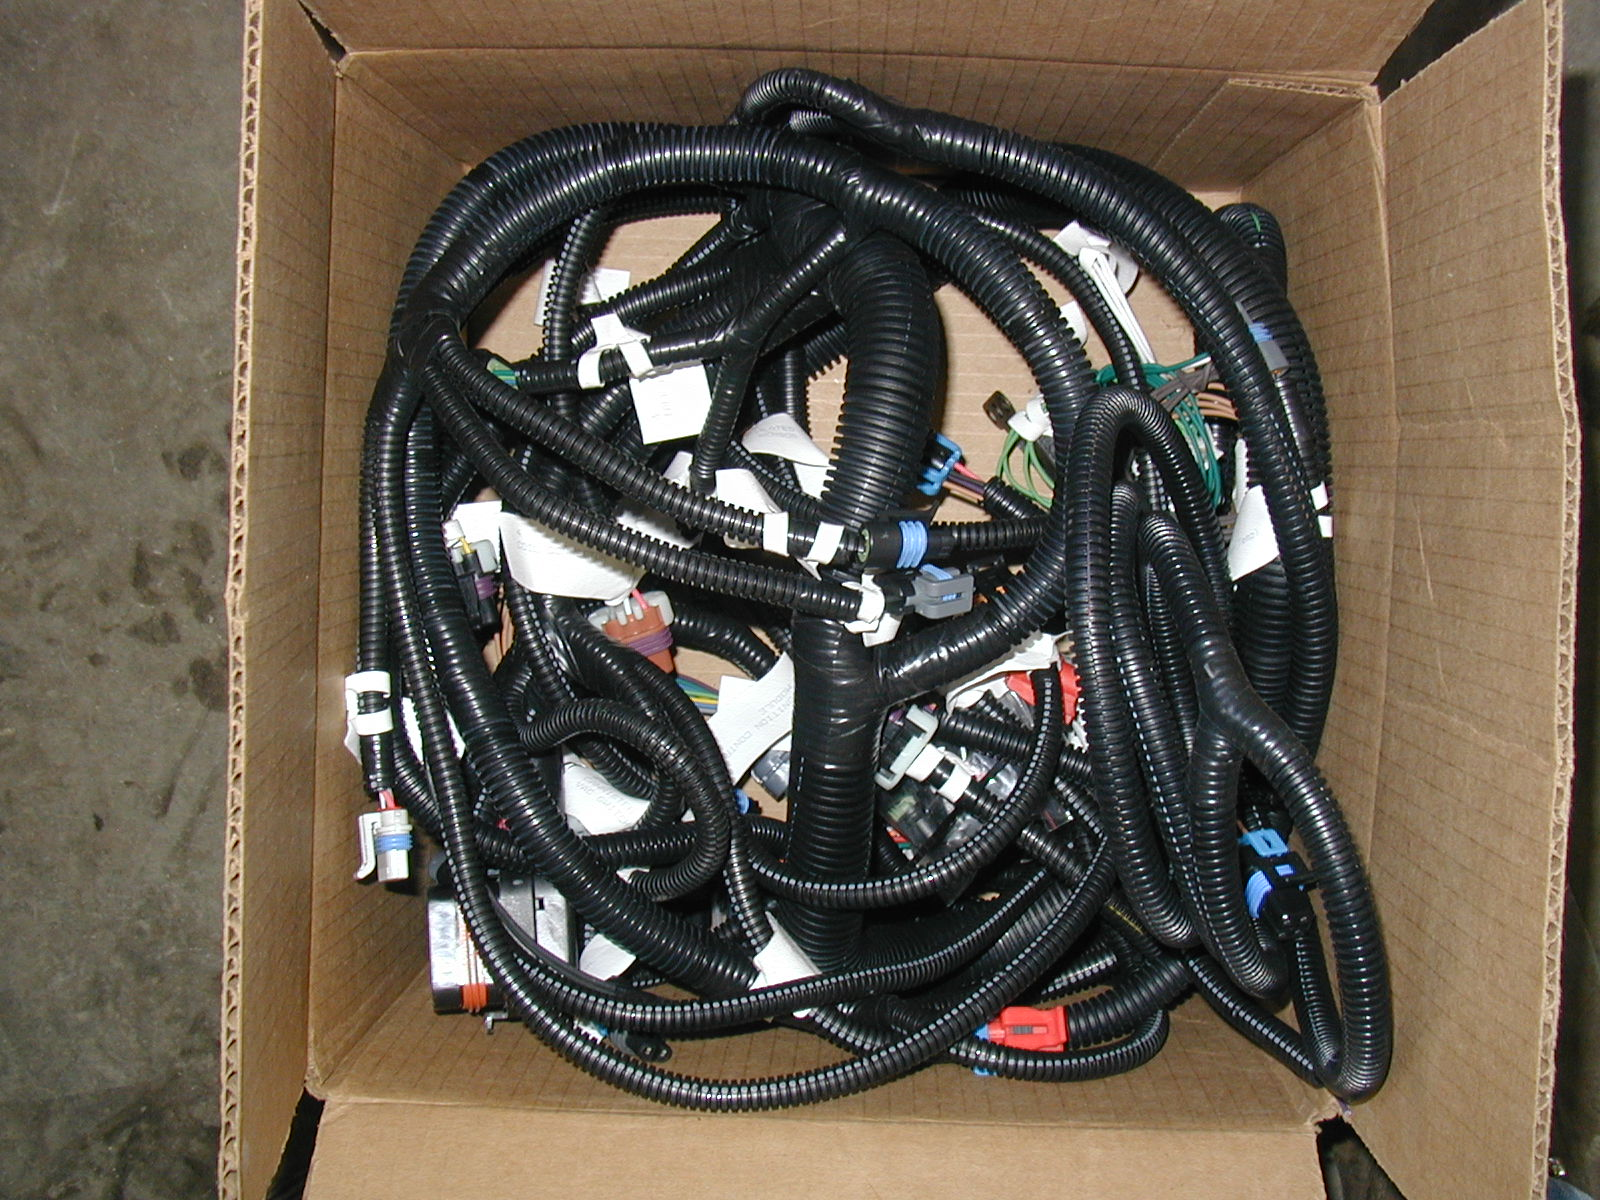 Chevy 43l Conversion Tbi Wiring Harness P1010008